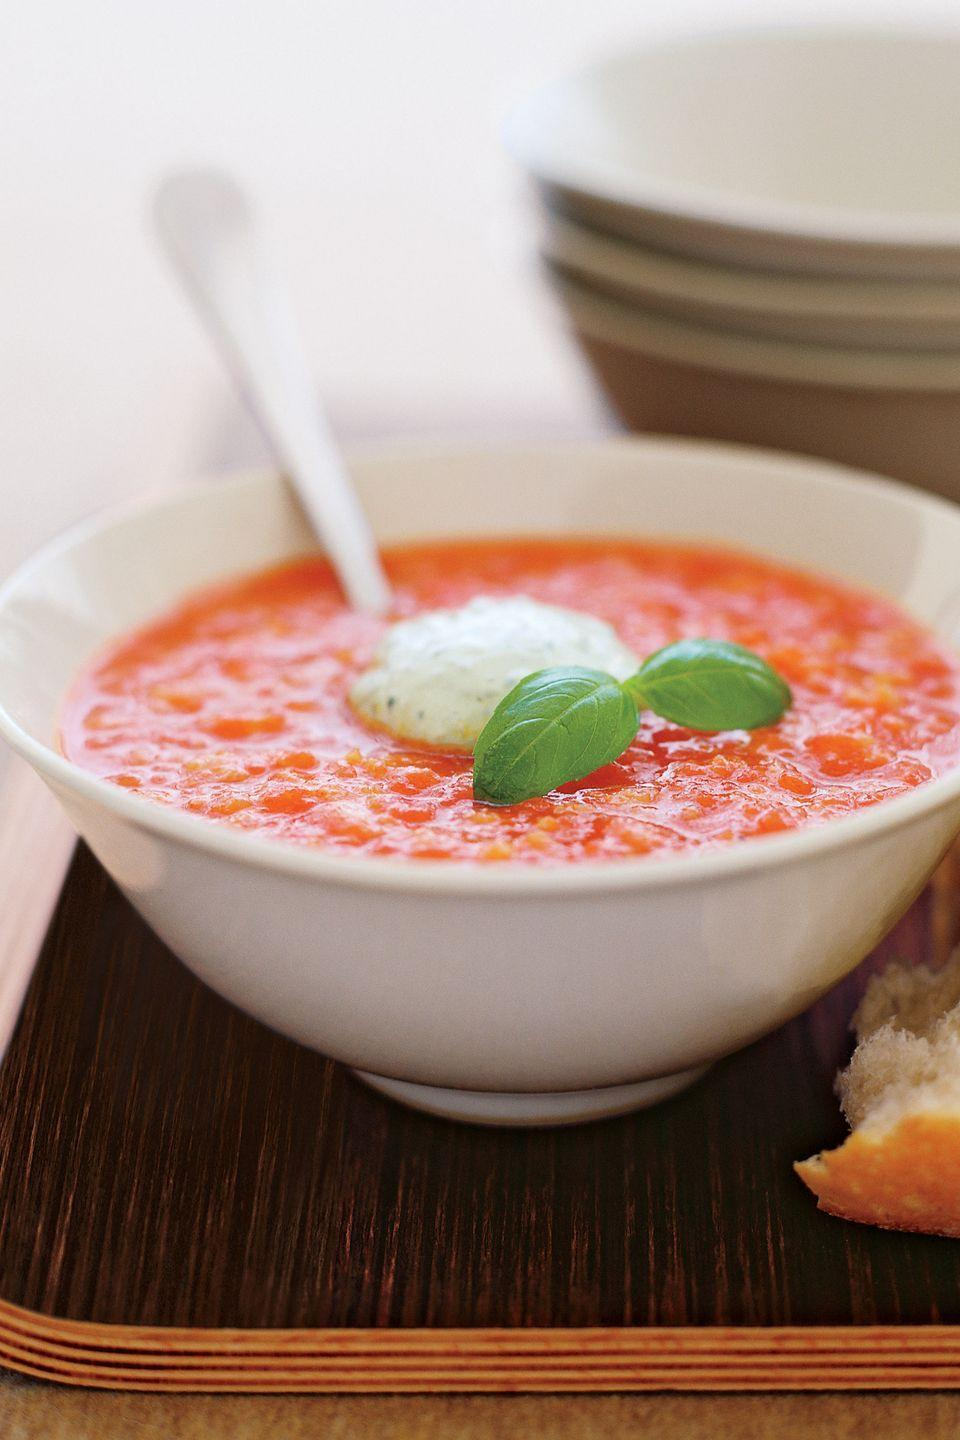 """<p>A splash of red-pepper sauce adds a little zing to this classic tomato gazpacho recipe. </p><p><strong><a href=""""https://www.countryliving.com/food-drinks/recipes/a8726/gazpacho-2783/"""" rel=""""nofollow noopener"""" target=""""_blank"""" data-ylk=""""slk:Get the recipe"""" class=""""link rapid-noclick-resp"""">Get the recipe</a>.</strong></p>"""